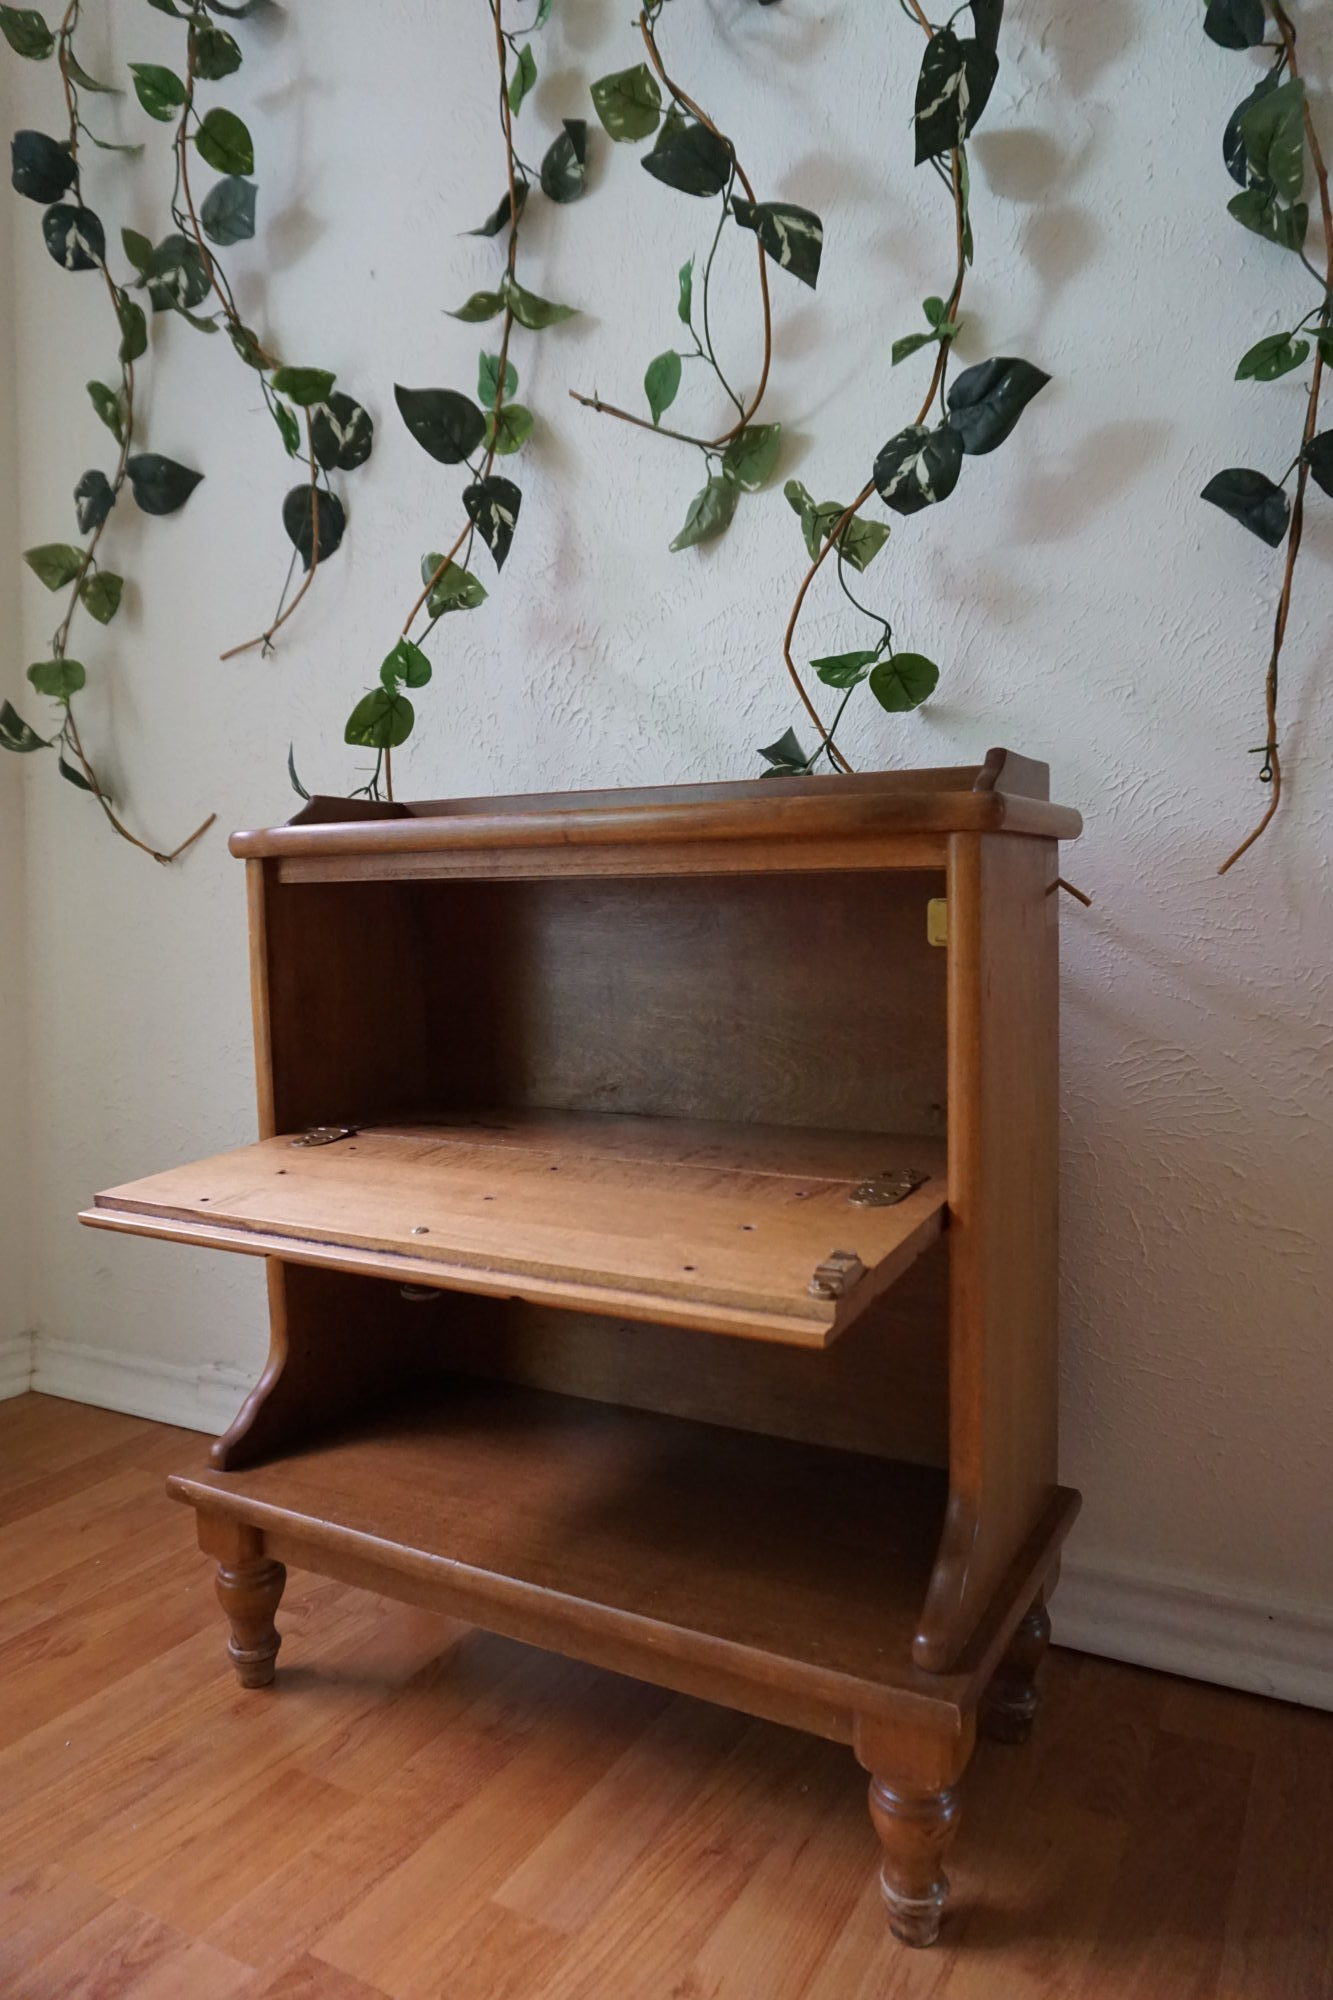 before - thrift store decor diy upcylce via Old World New